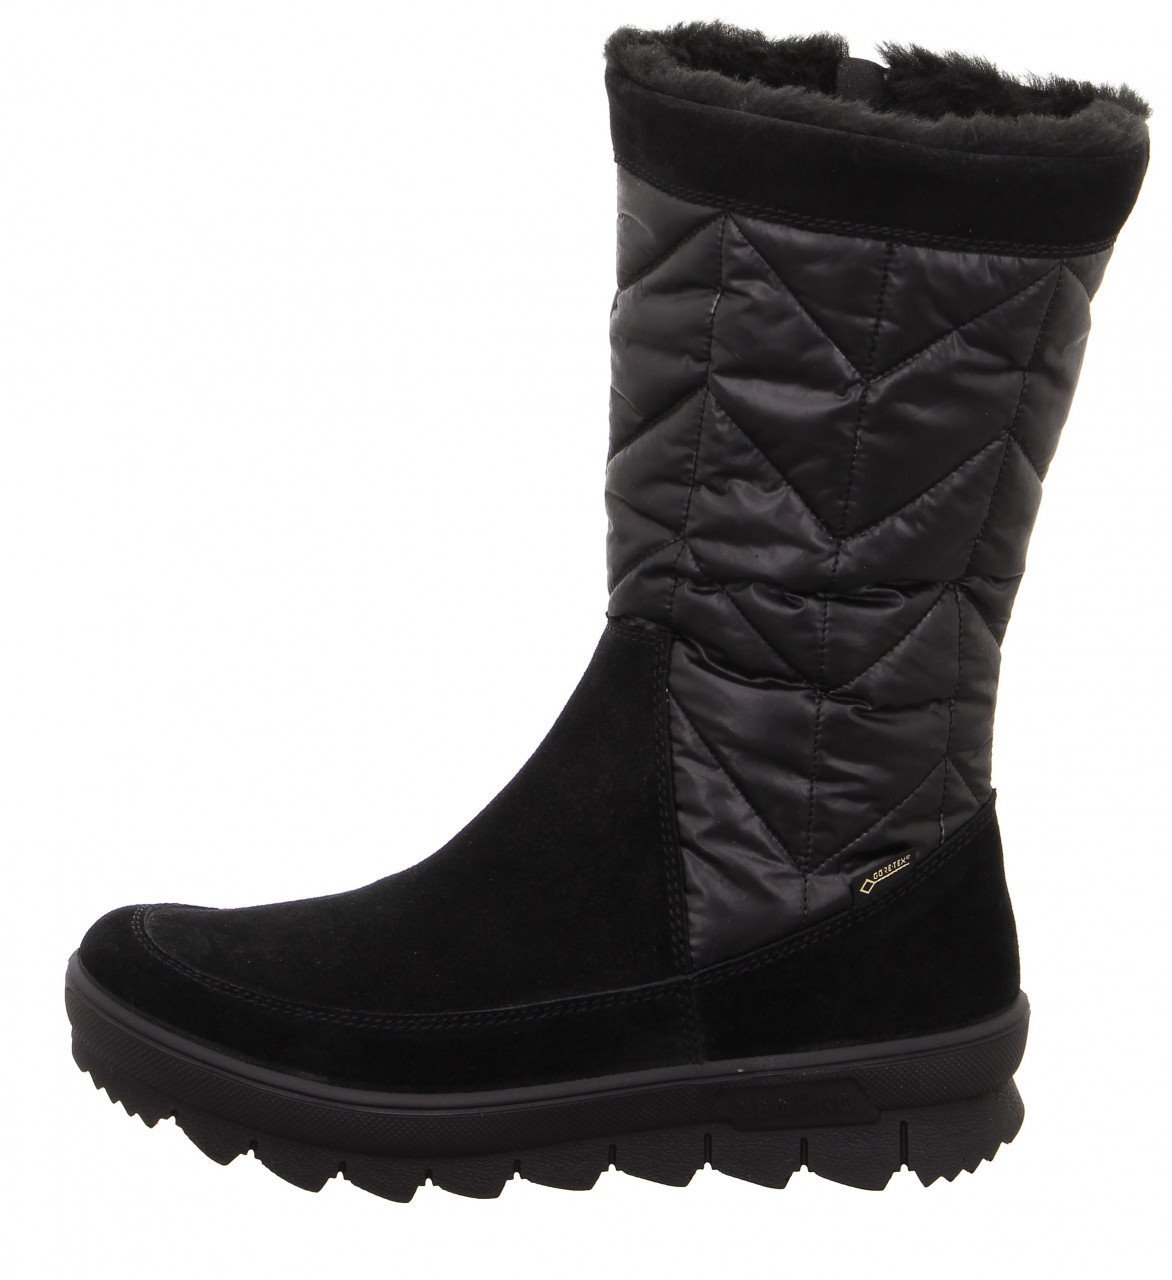 "NOVARA 934-00 BLACK WOMEN'S NOVARA is the classic among the boots of legero: its upper with padded quilt makes this model particularly special. The non-slip, yet very light and flexible sole with a striking sawtooth profile offers optimal stability on winter surfaces. The cozy warm lining in fur look with the proven GORE-TEX function is completely waterproof and with its breathability ensures optimum climate comfort in the shoe. Thanks to the side outer zip, it is possible to put on and take off quickly. The model, which is equipped with a removable insole, is offered in the comfort range ""G"". SKU 17267 REG 260. ALWAYS 229.00"